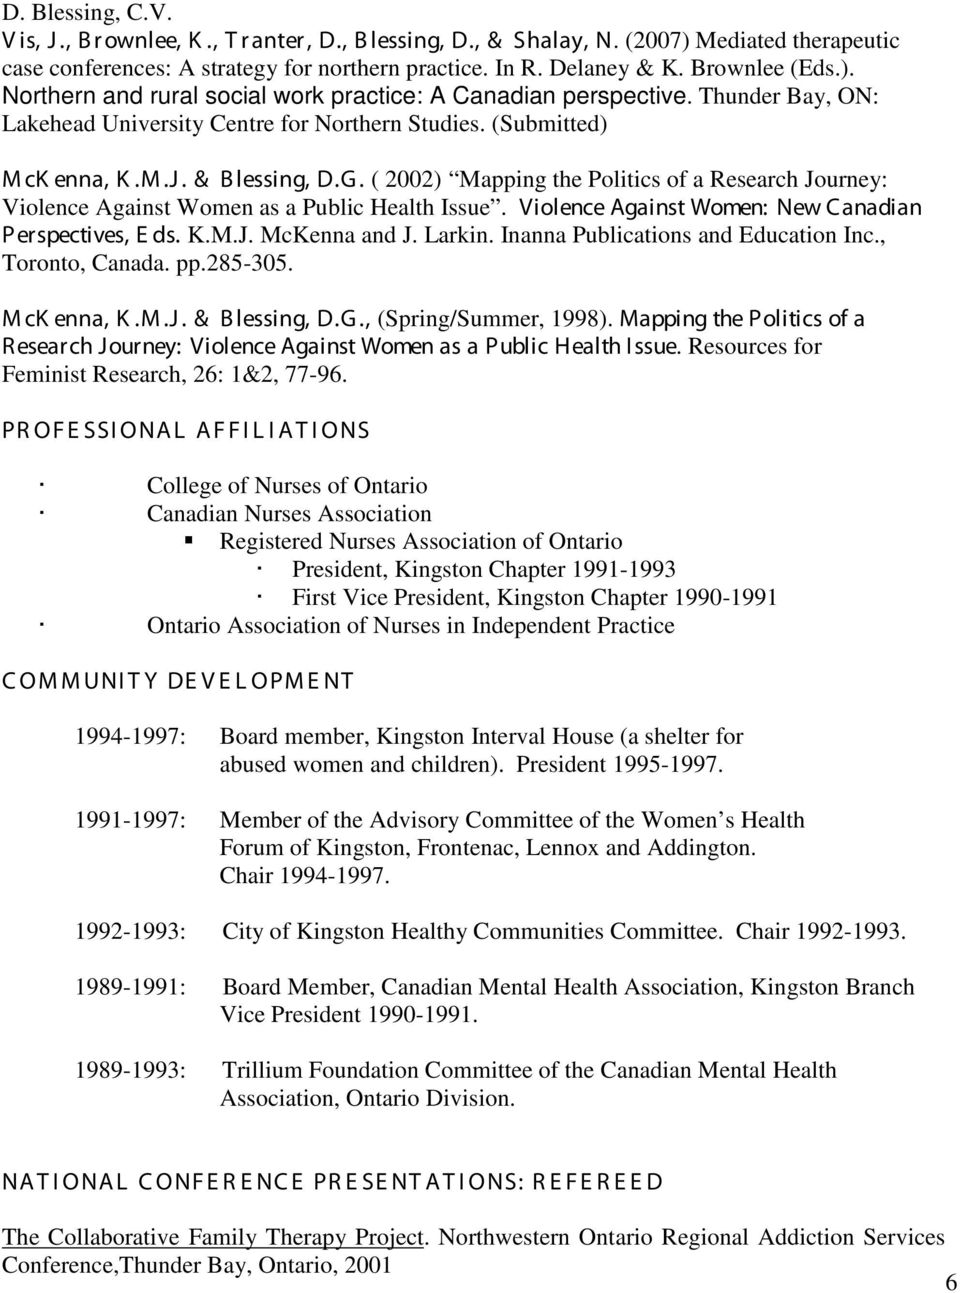 ( 2002) Mapping the Politics of a Research Journey: Violence Against Women as a Public Health Issue. Violence Against Women: New C anadian P erspectives, E ds. K.M.J. McKenna and J. Larkin.